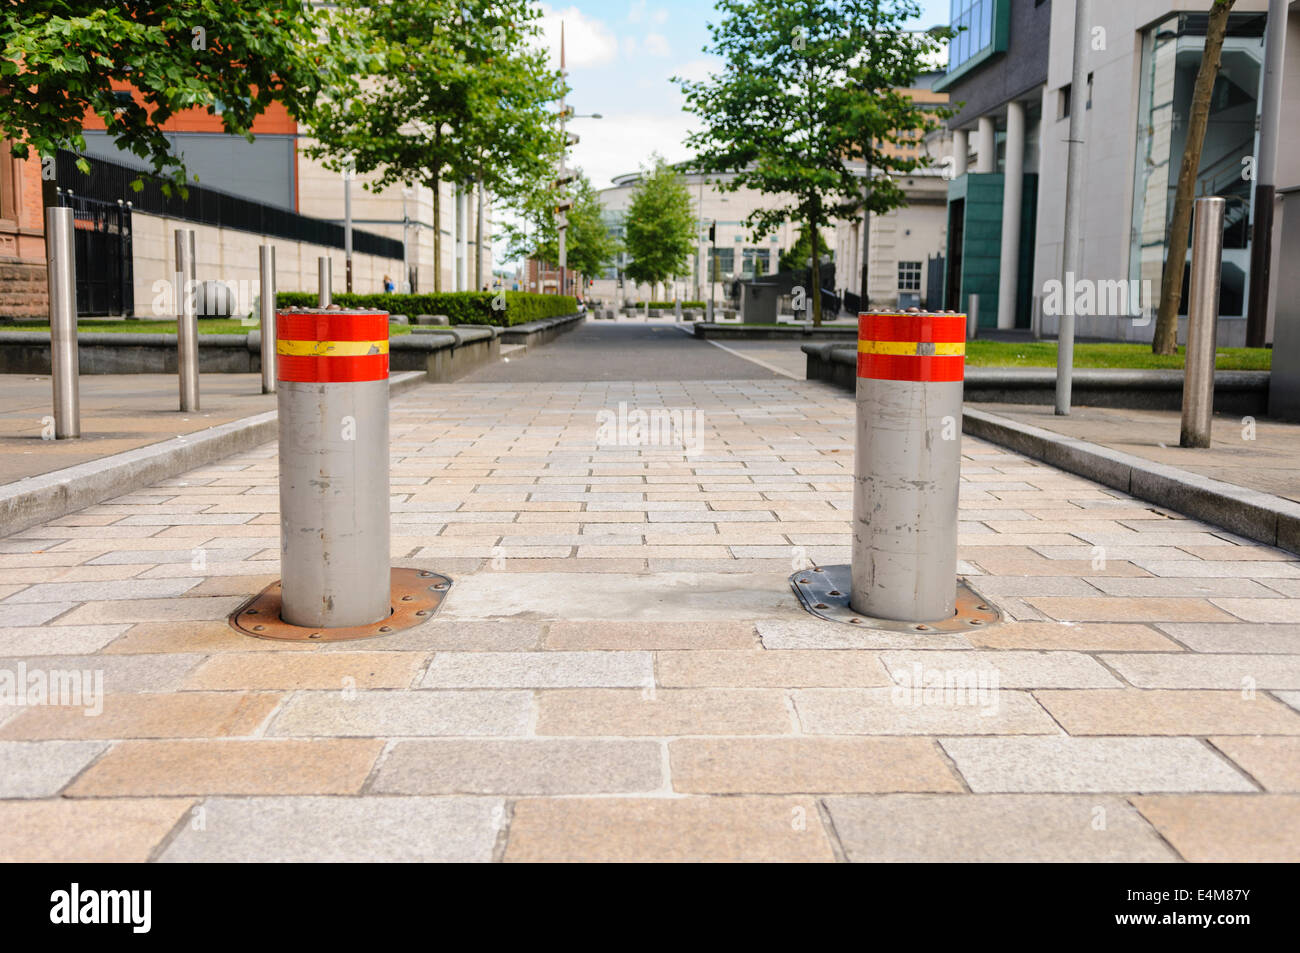 Hydraulically operated high security rising bollards preventing vehicles proceeding down a pedestrian area without - Stock Image